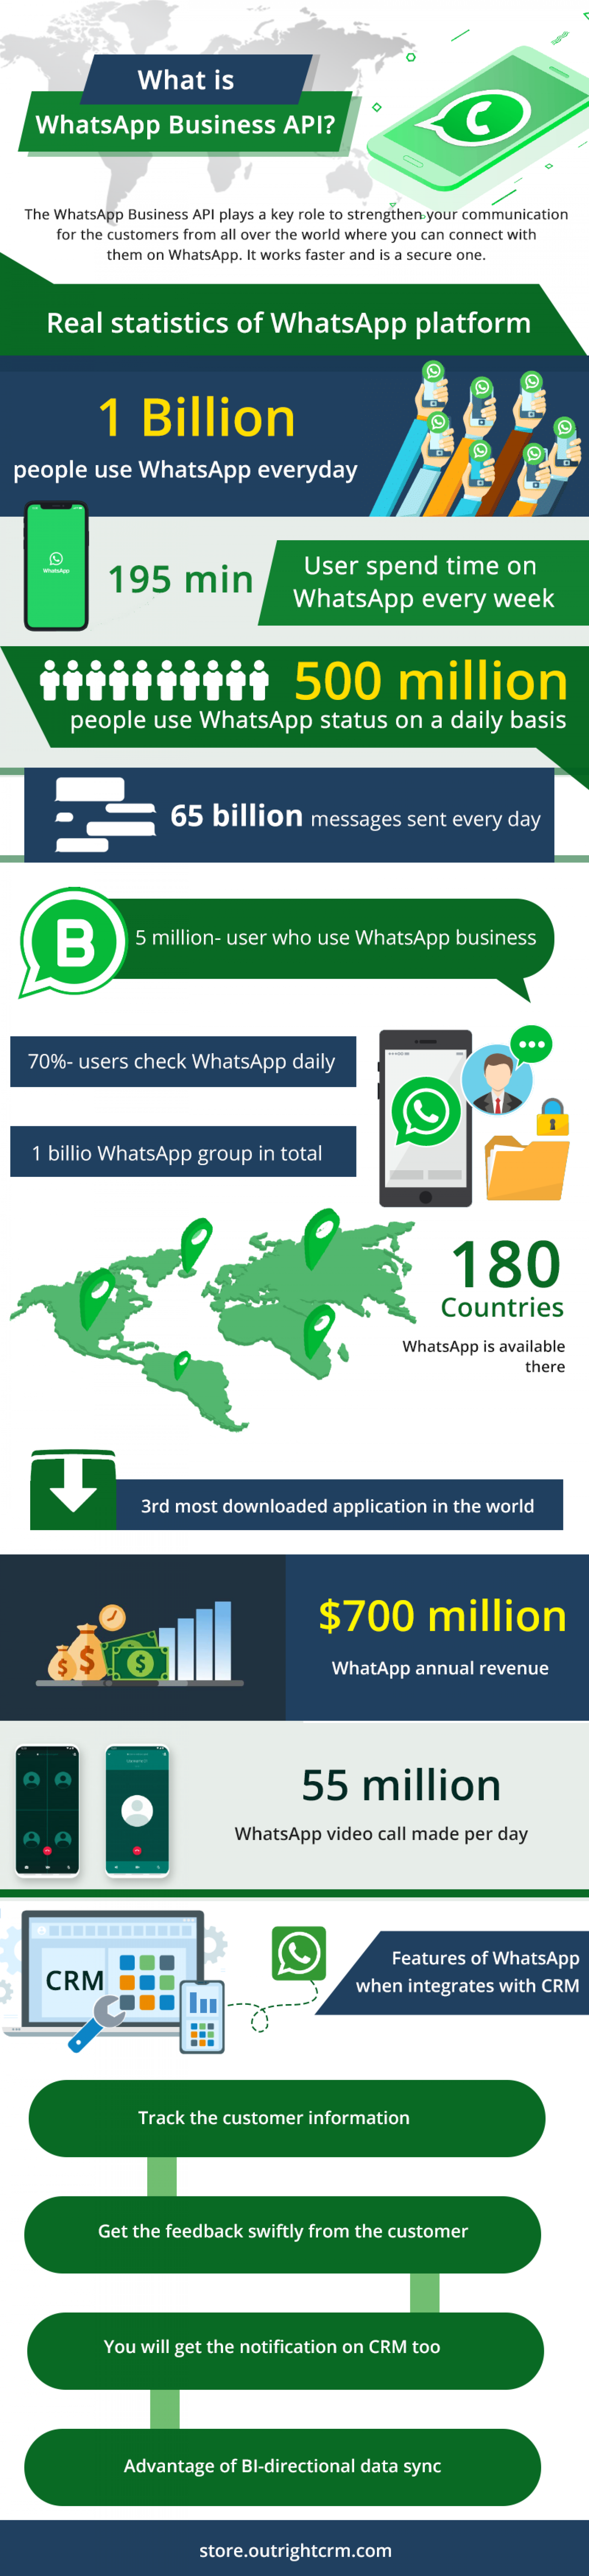 How to use WhatsApp CRM integration? How does it work? Infographic